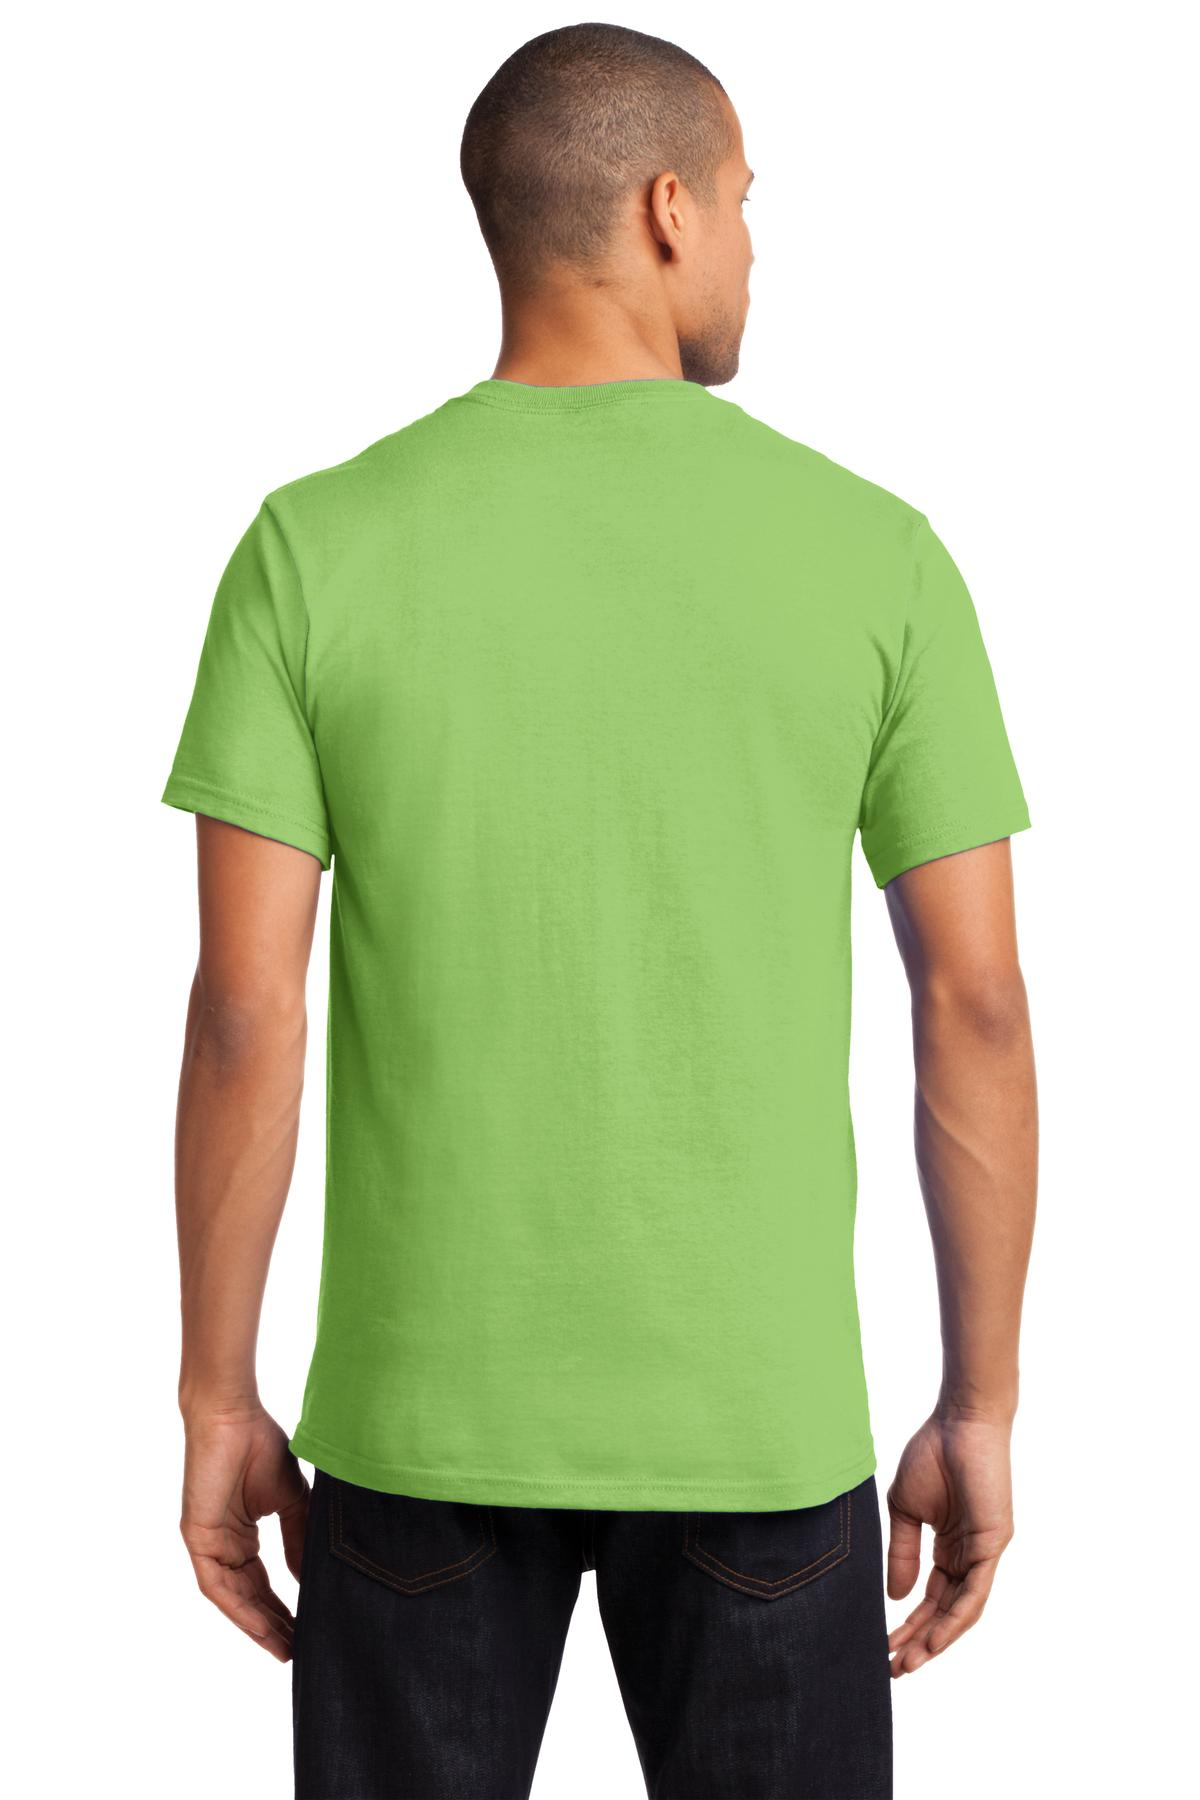 Port-amp-Company-Tall-Essential-TShirt-with-Pocket-PC61PT-Size-LT-4XLT thumbnail 22